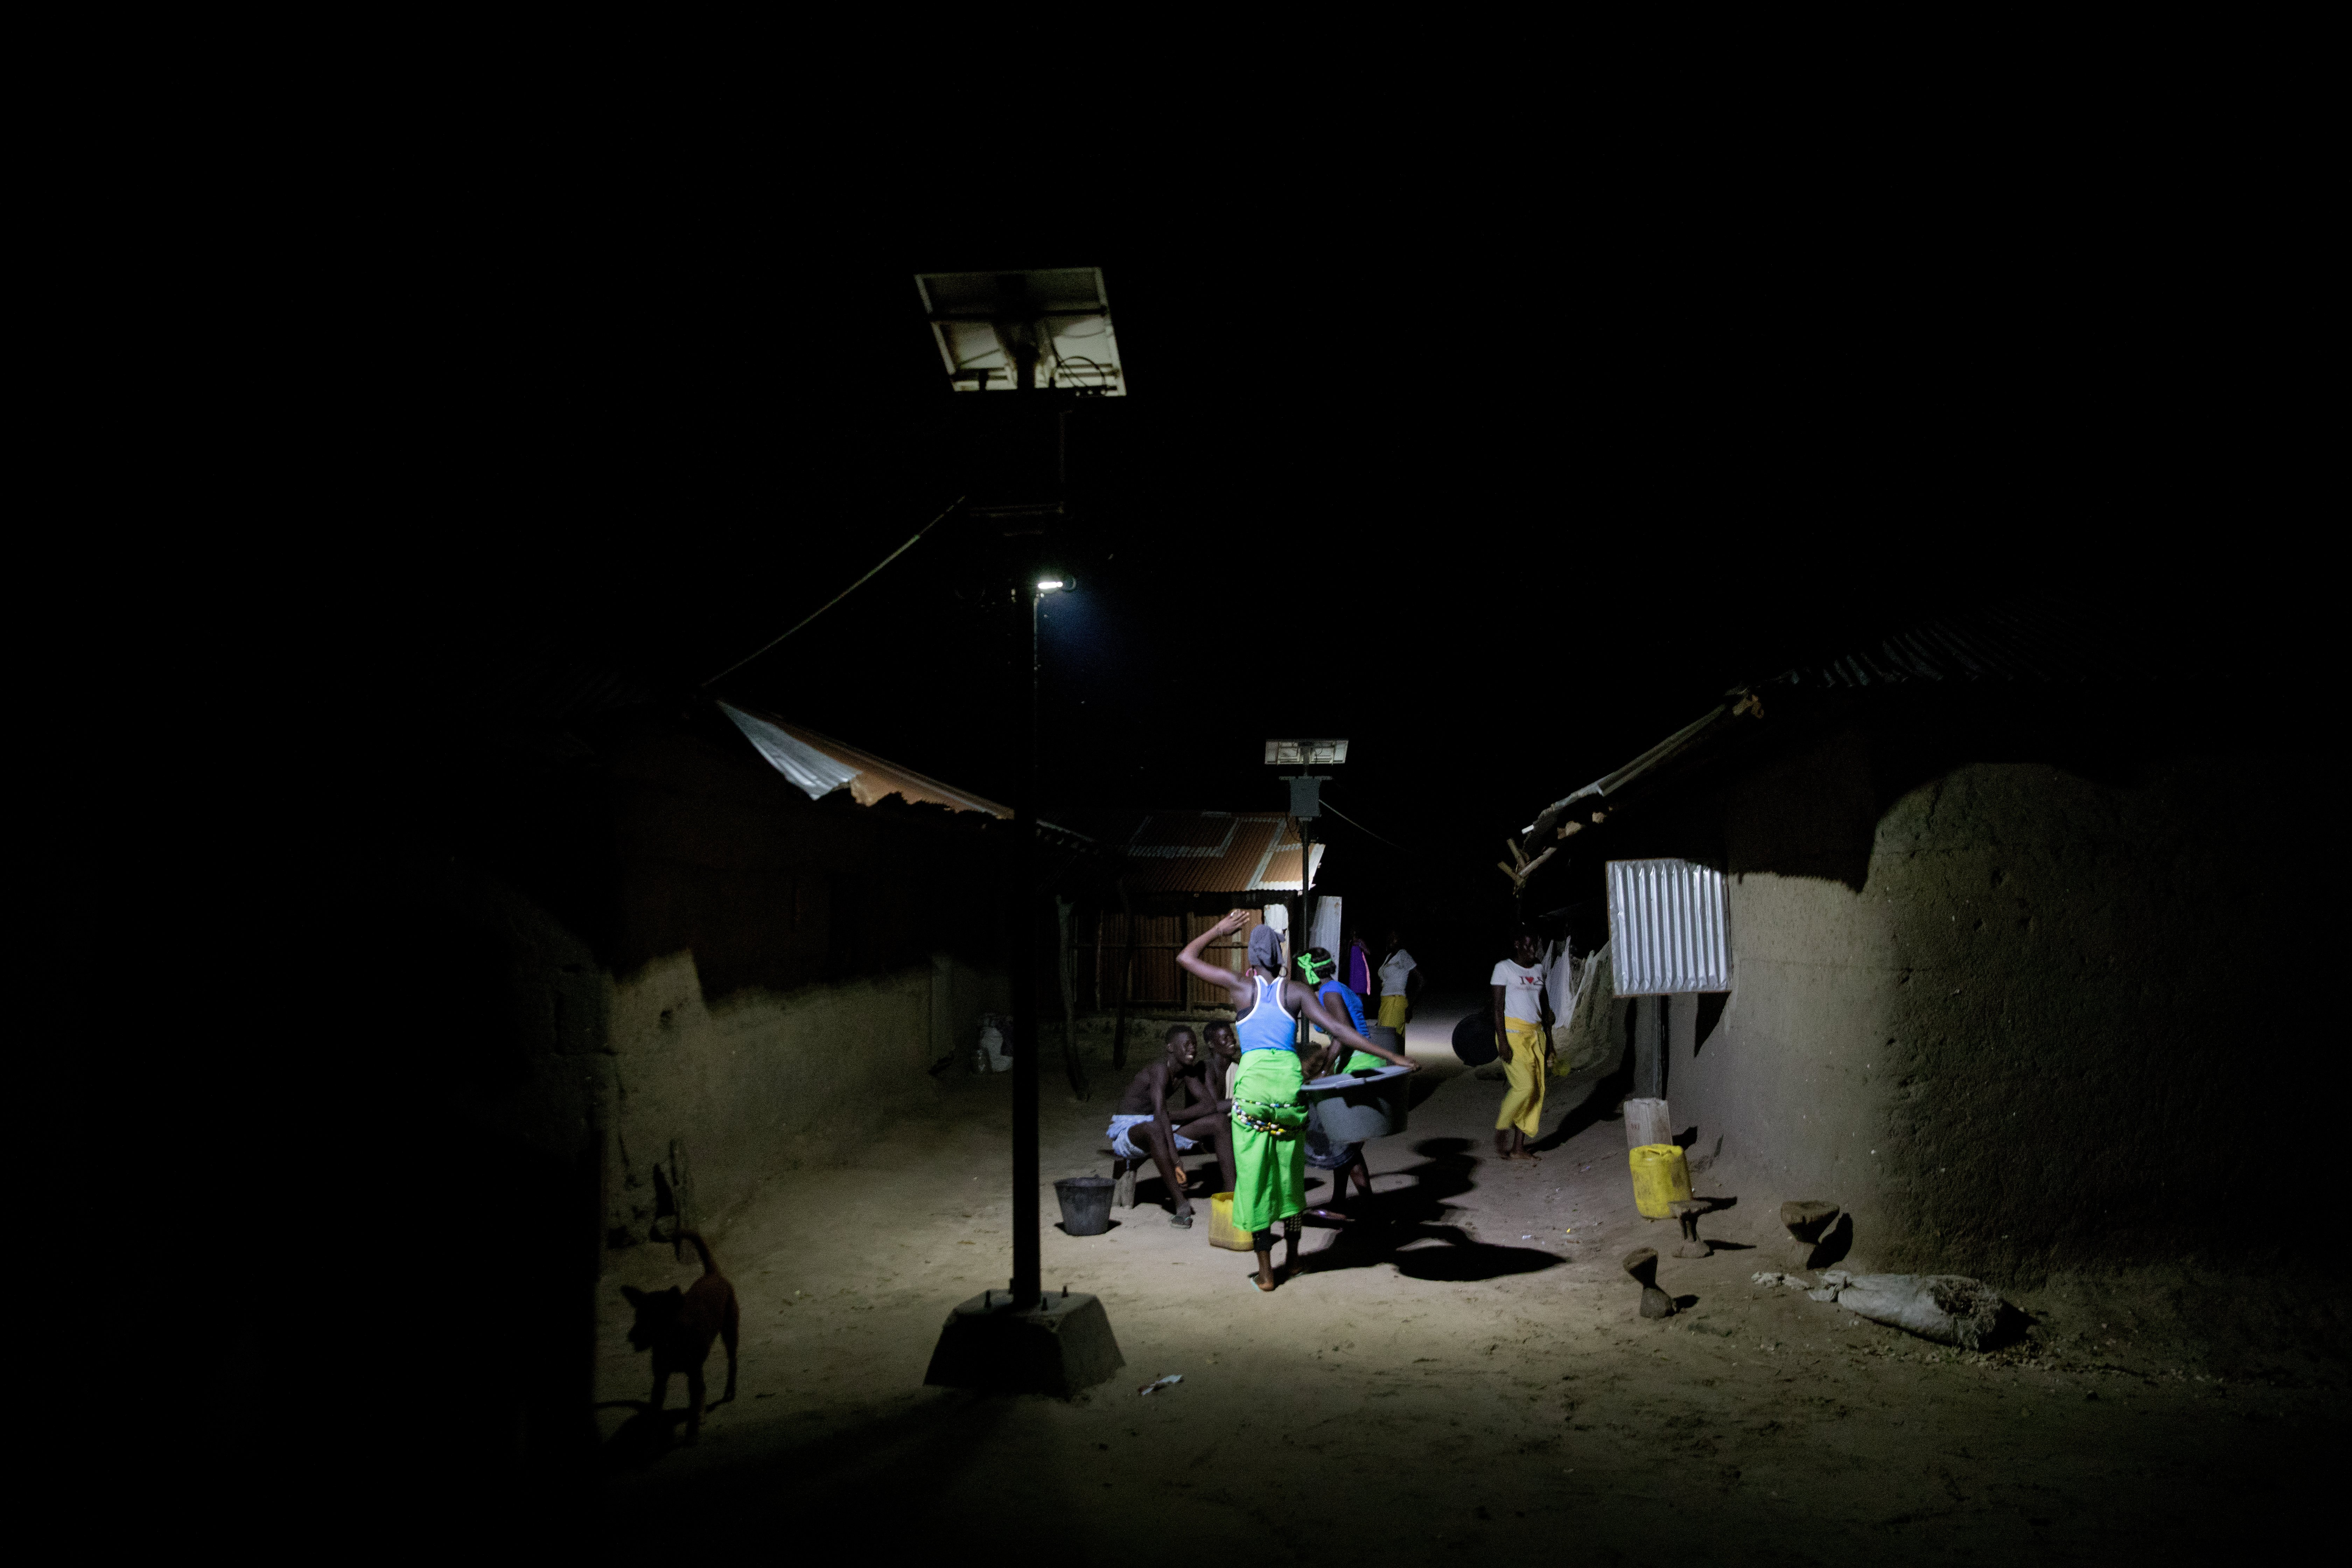 Villagers socialise under bright lights after dark following the installation of a solar power grid paid for by the community in Niomoune, Senegal.